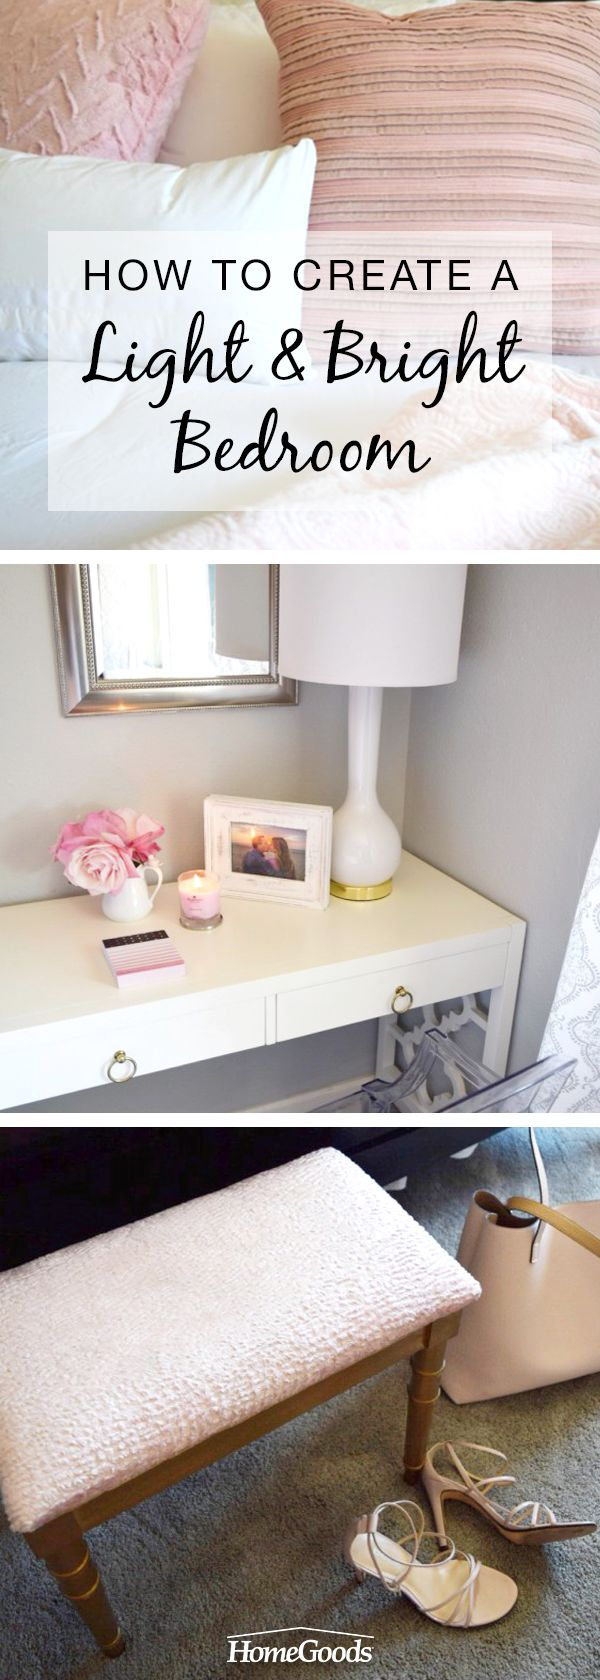 White bedding is clean, crisp, timeless and has an inherent hotel quality. Plus it's a great canvas for seasonal changes. Here blush, florals and luxe textures create a romantic escape. Lighten up your bedroom with these stylish seasonal tips from HomeGoods.